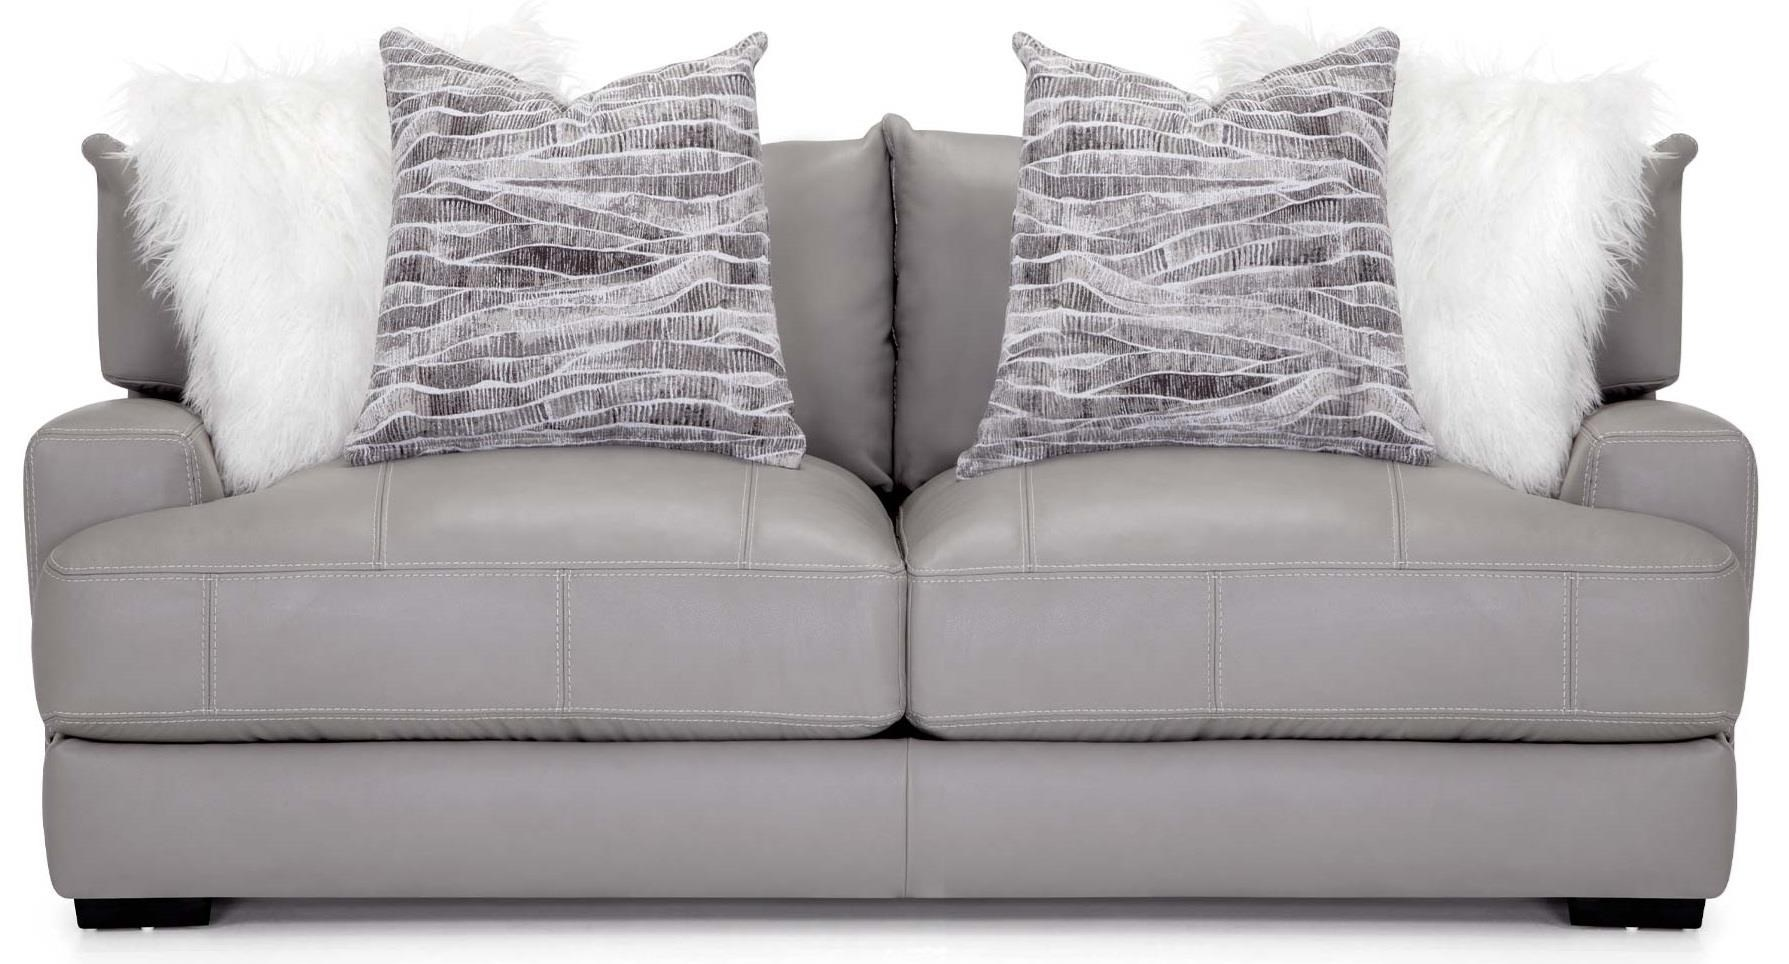 Antonia Leather Sofa at Bennett's Furniture and Mattresses